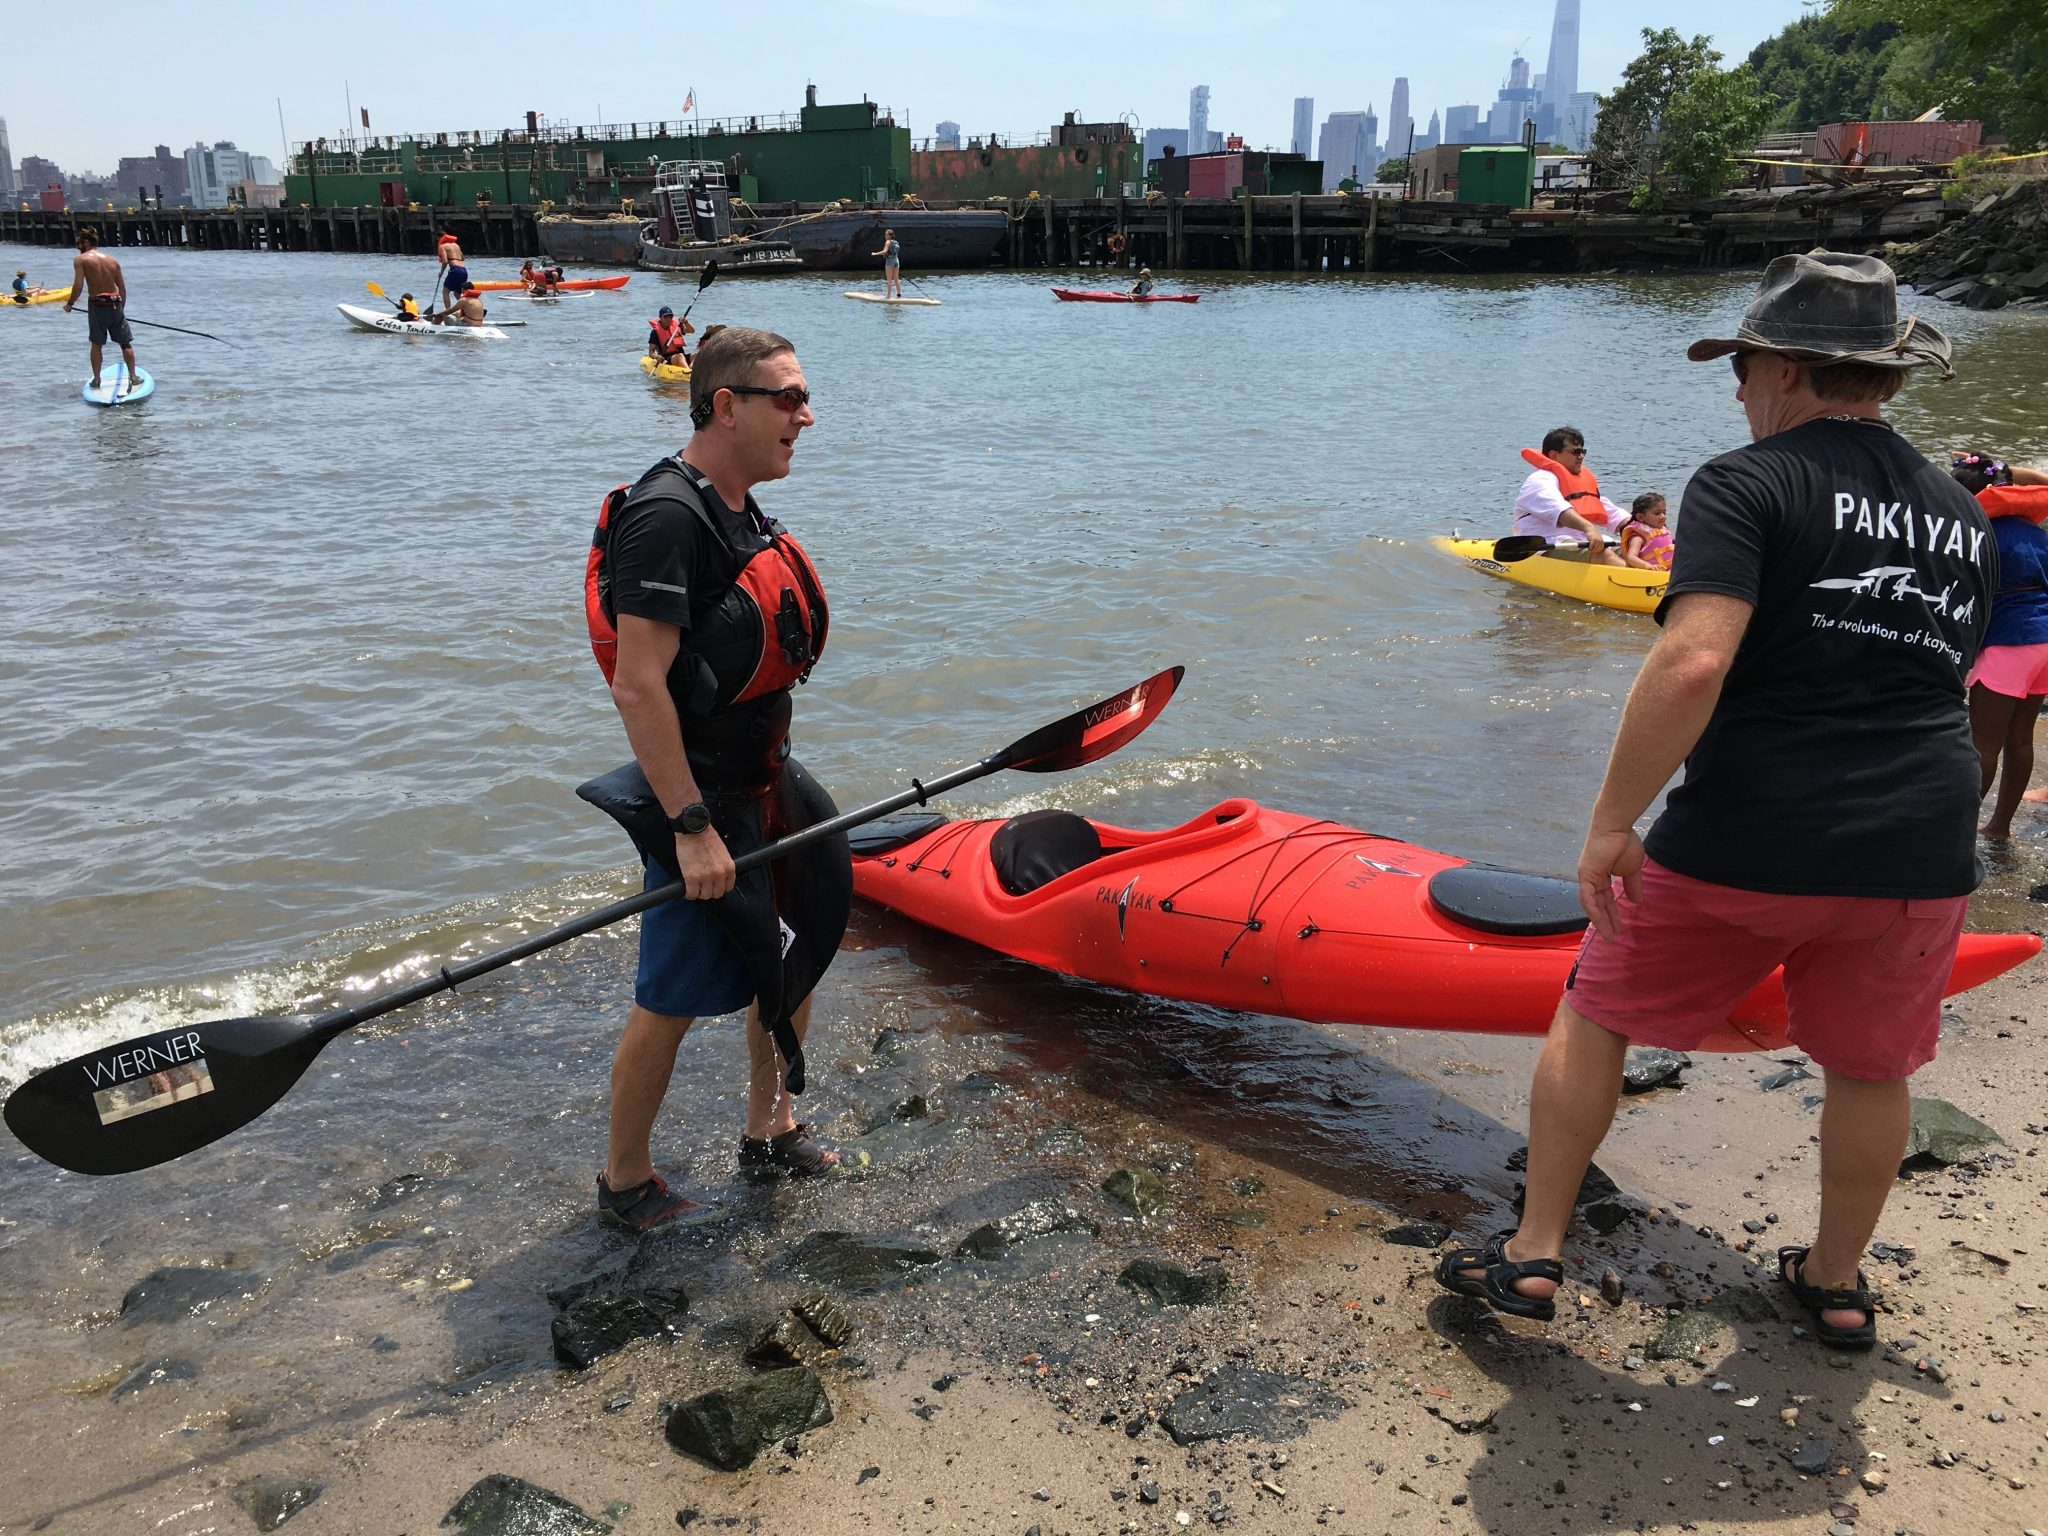 The ultimate kayak is set to make waves in Boston